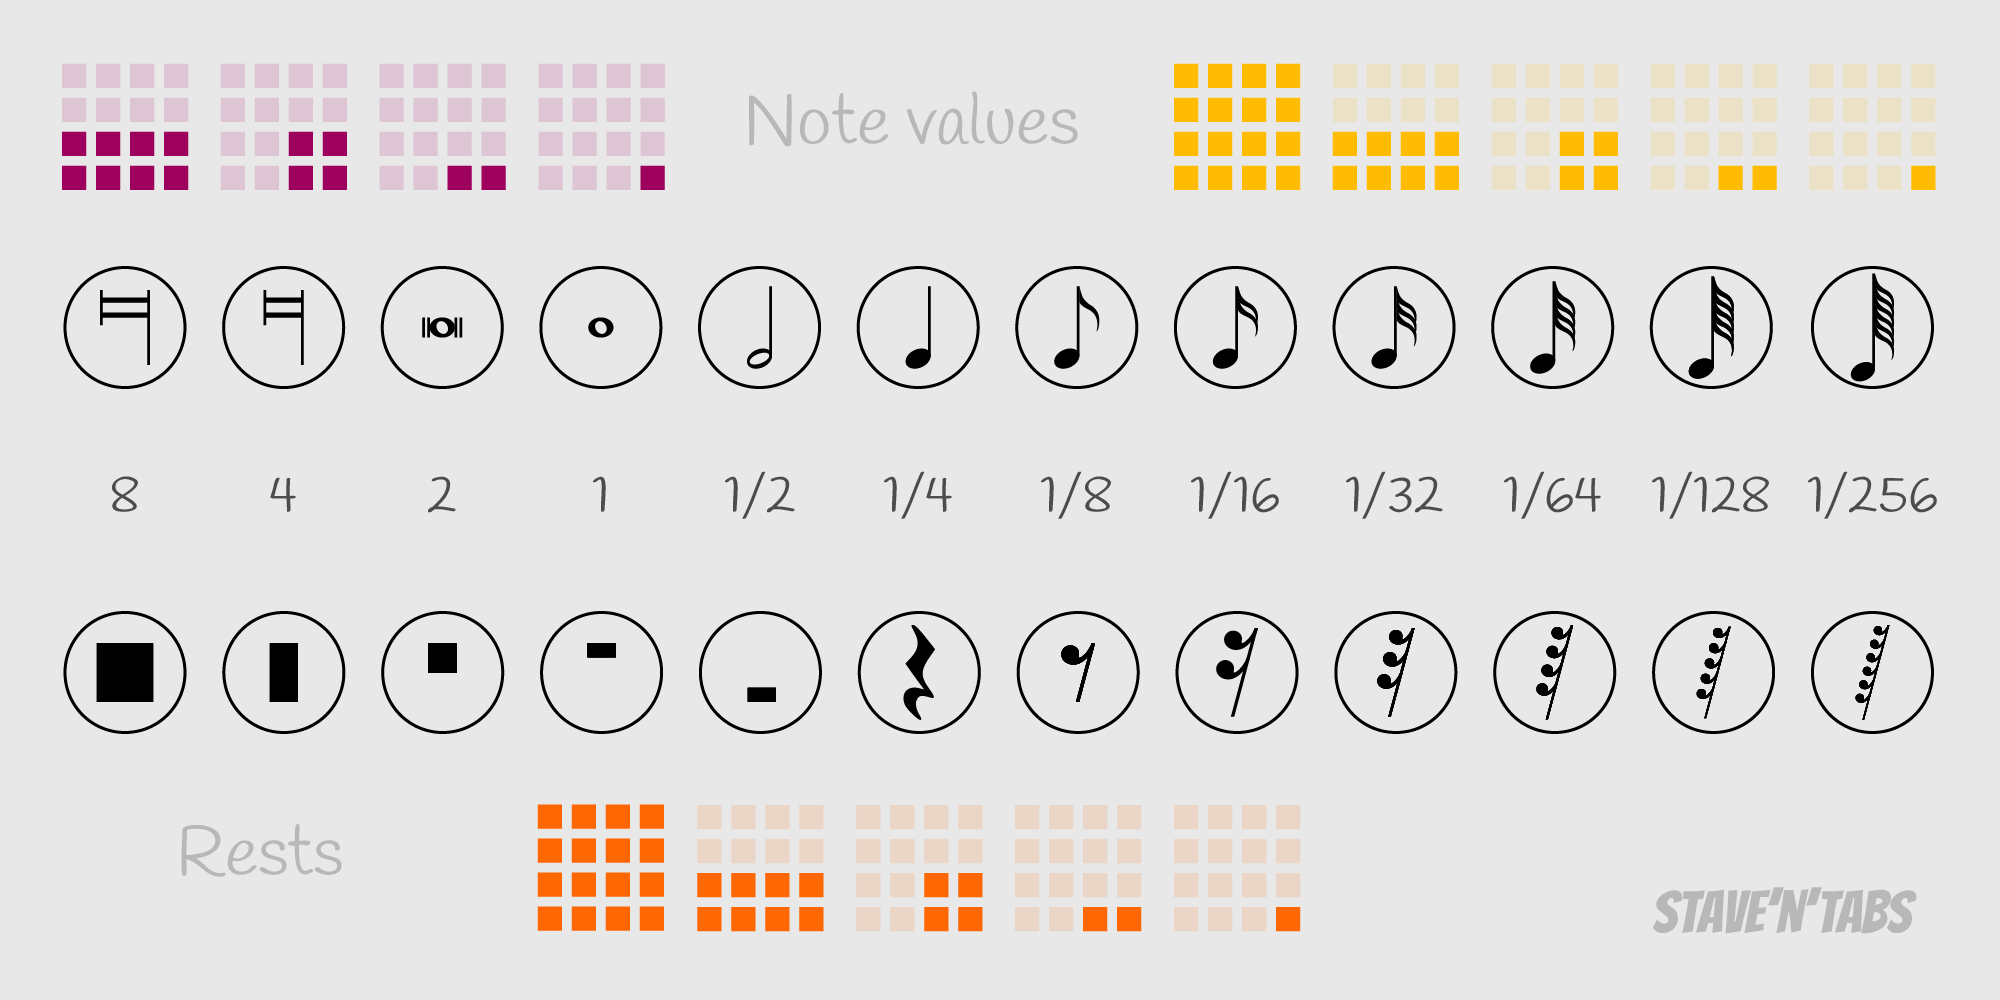 Note values and rests